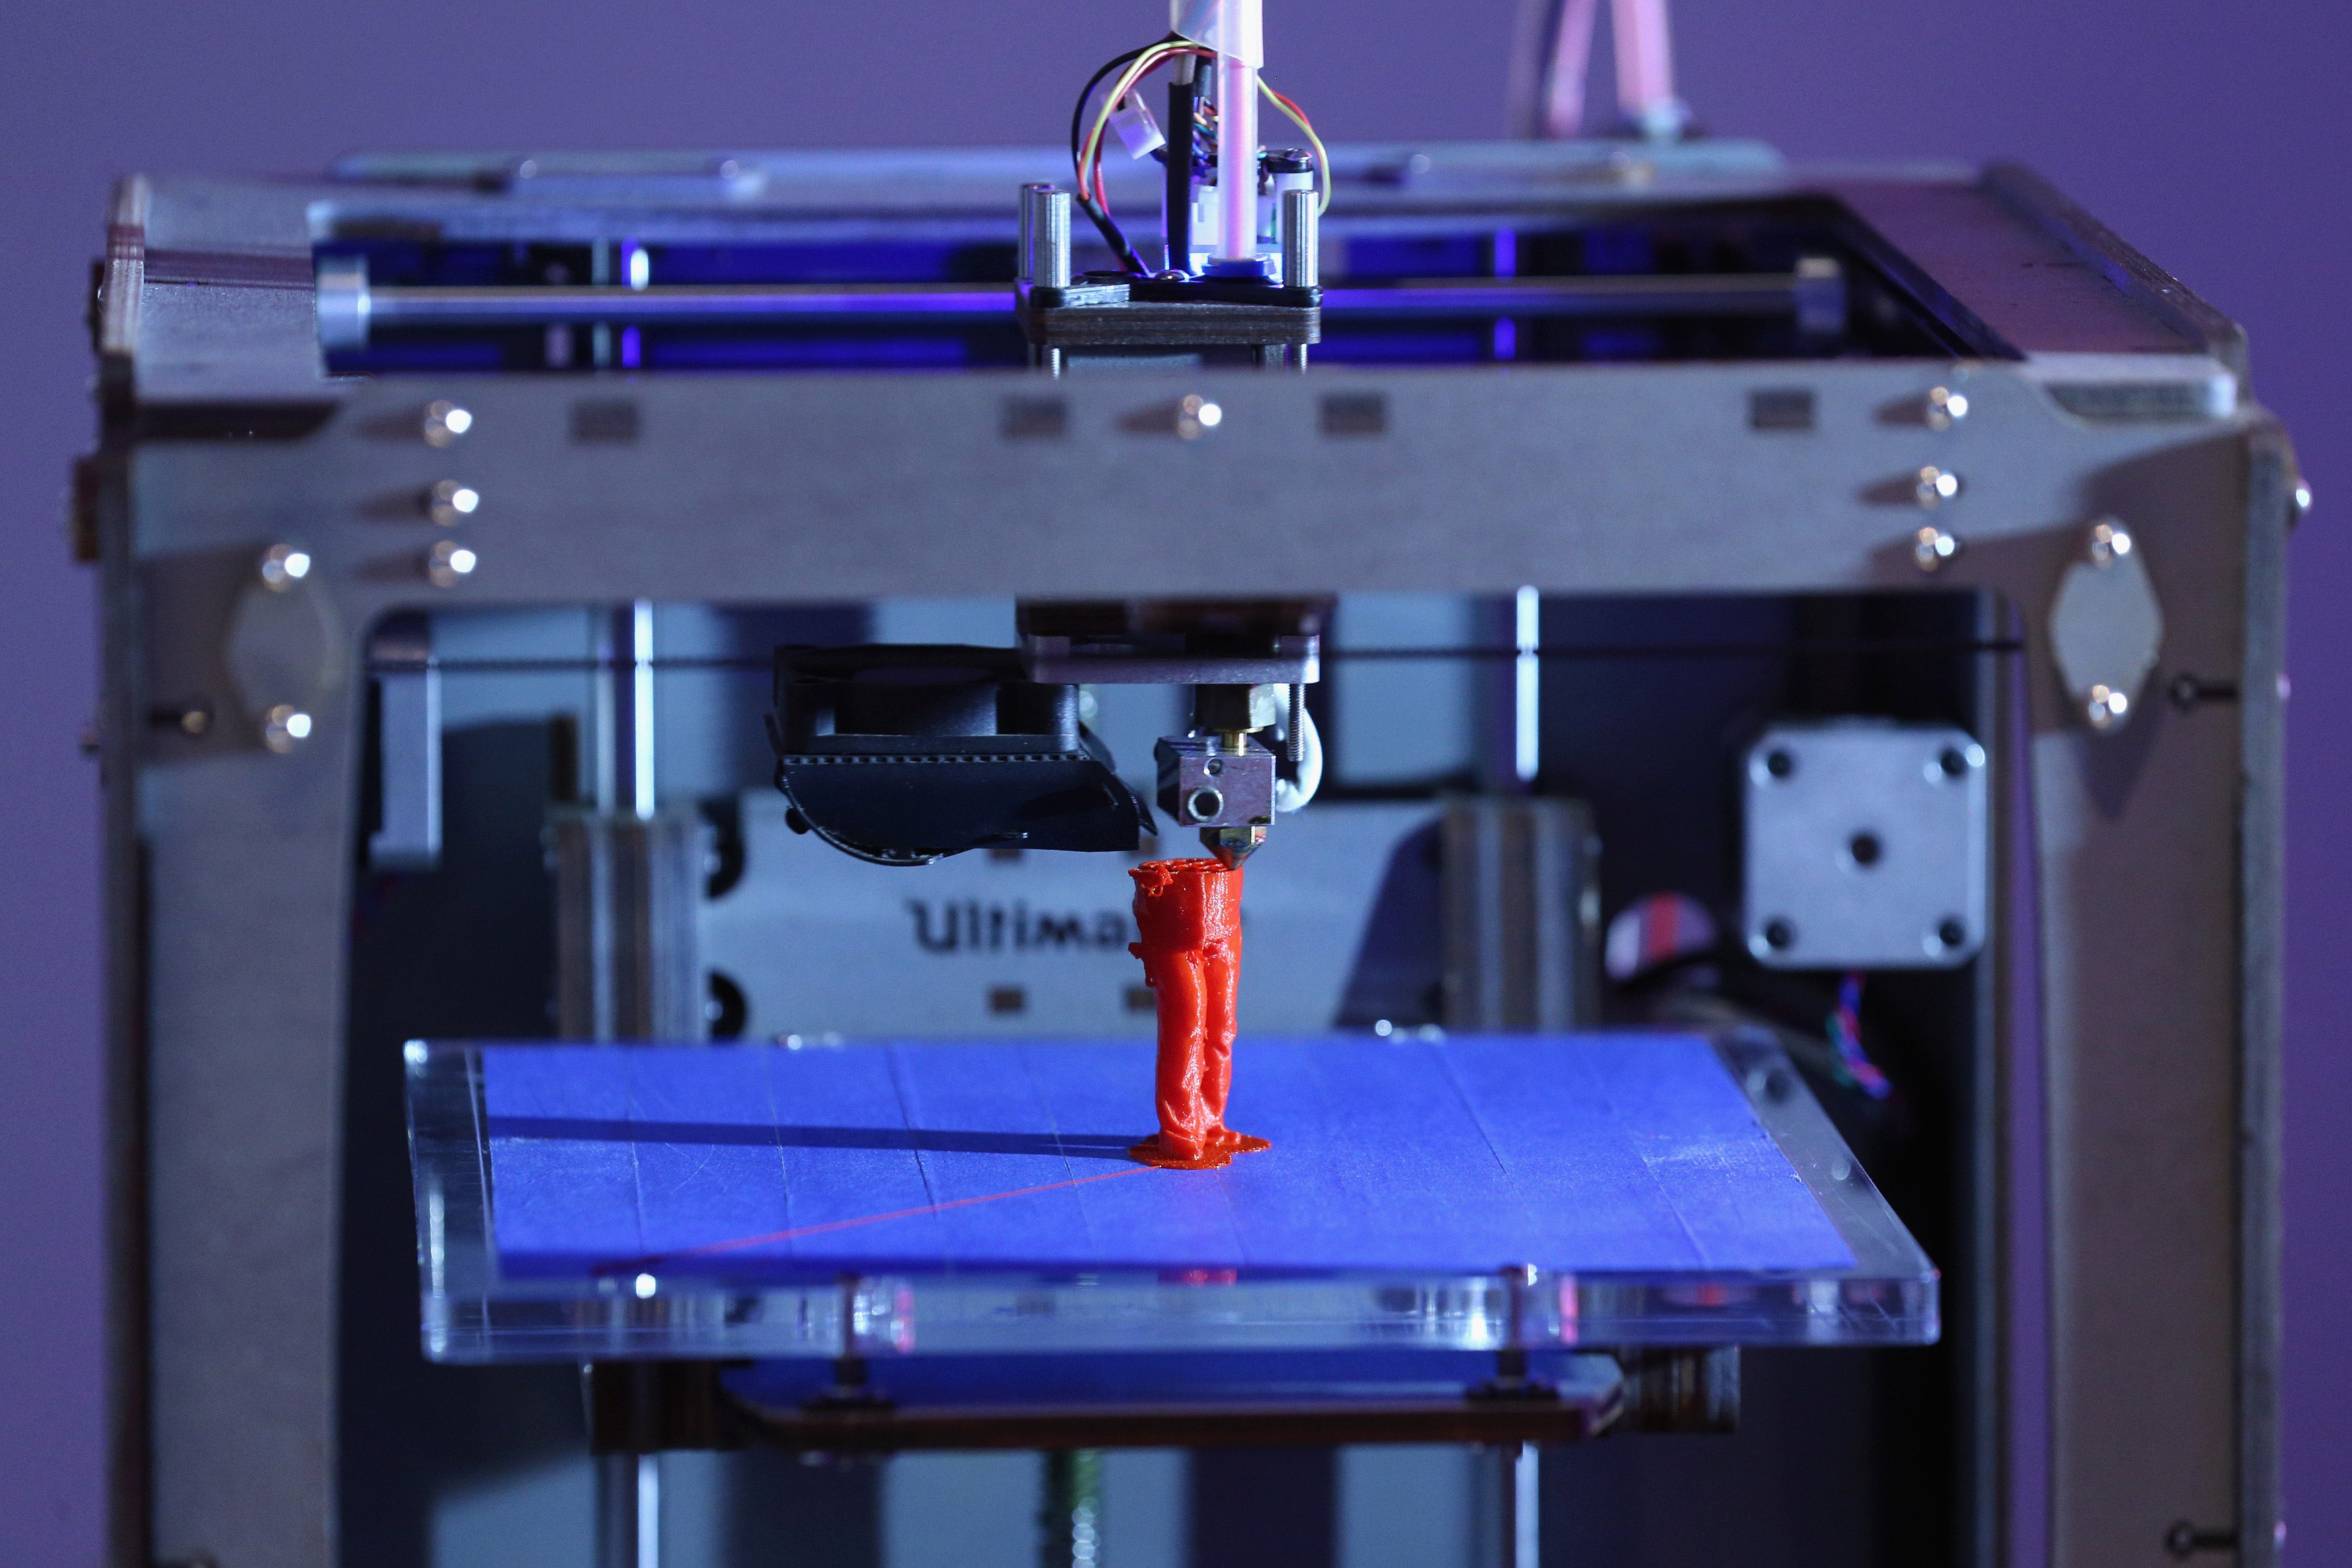 D Printer Exhibition London : The next frontier for d printing human organs